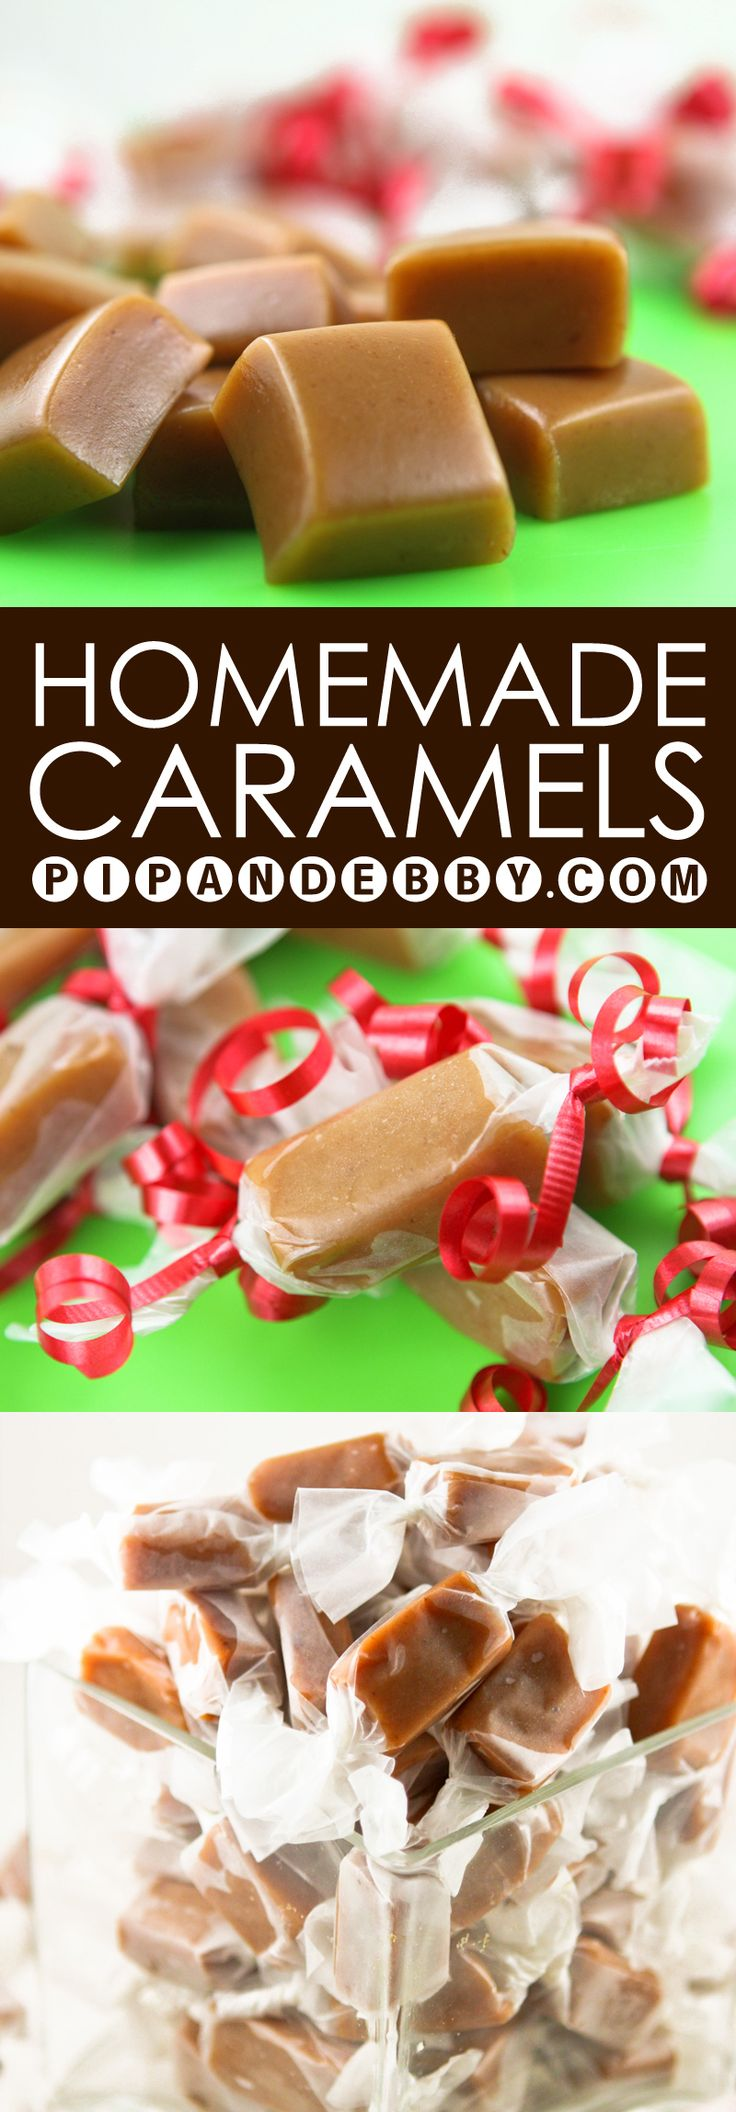 Homemade Caramels | This is my FAVORITE holiday treat. These caramels are to DIE for.